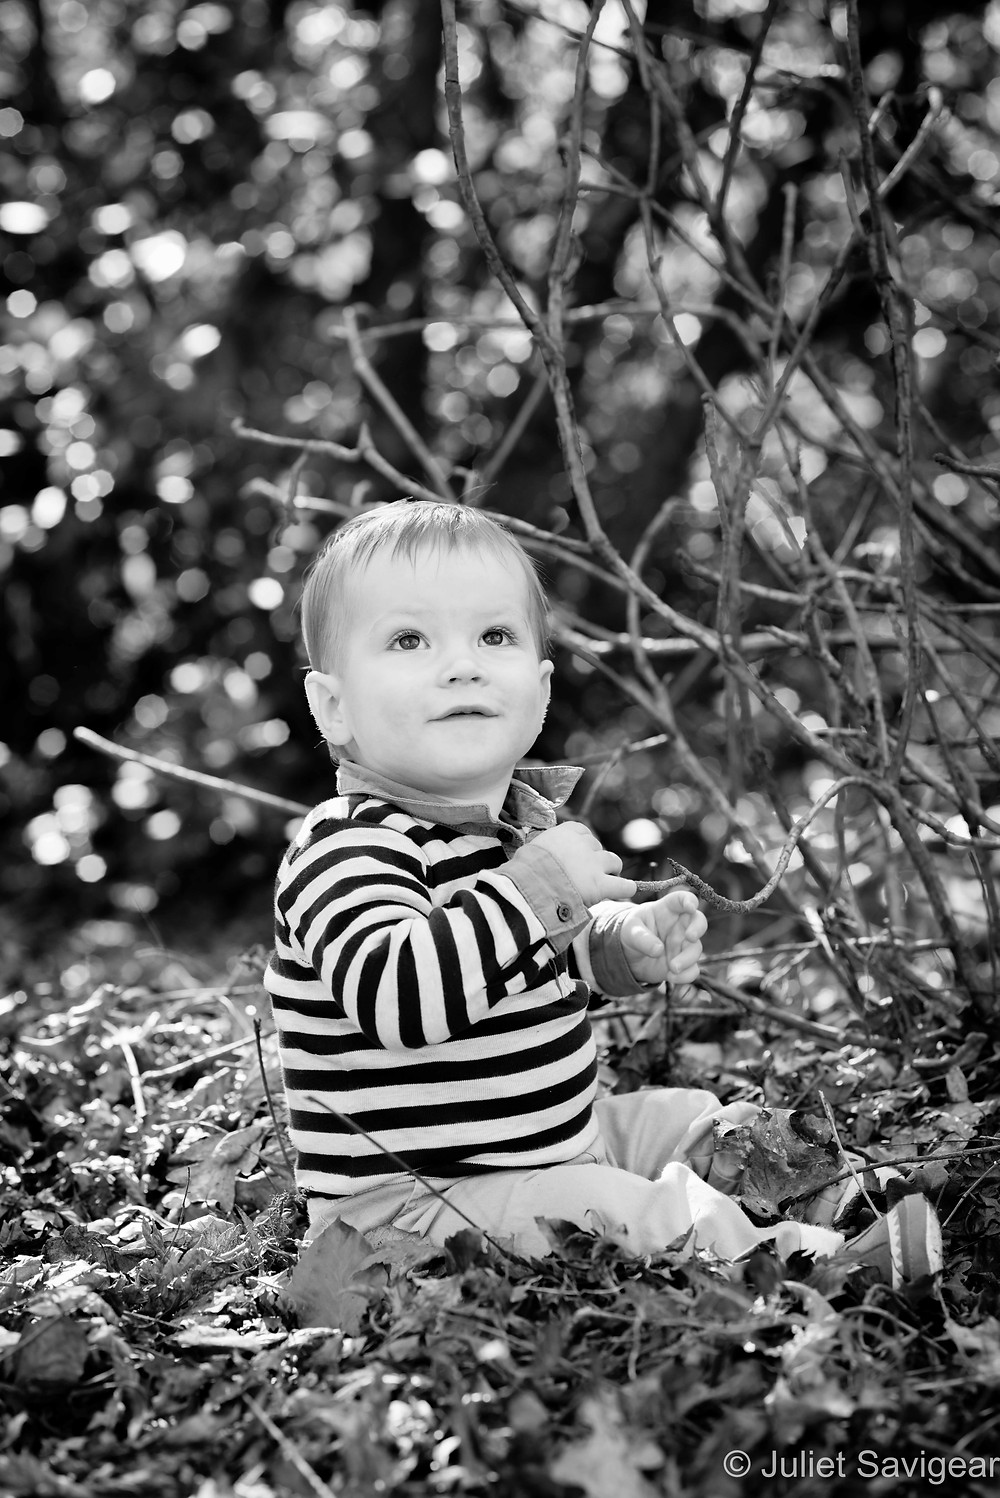 Baby among the leaves and branches